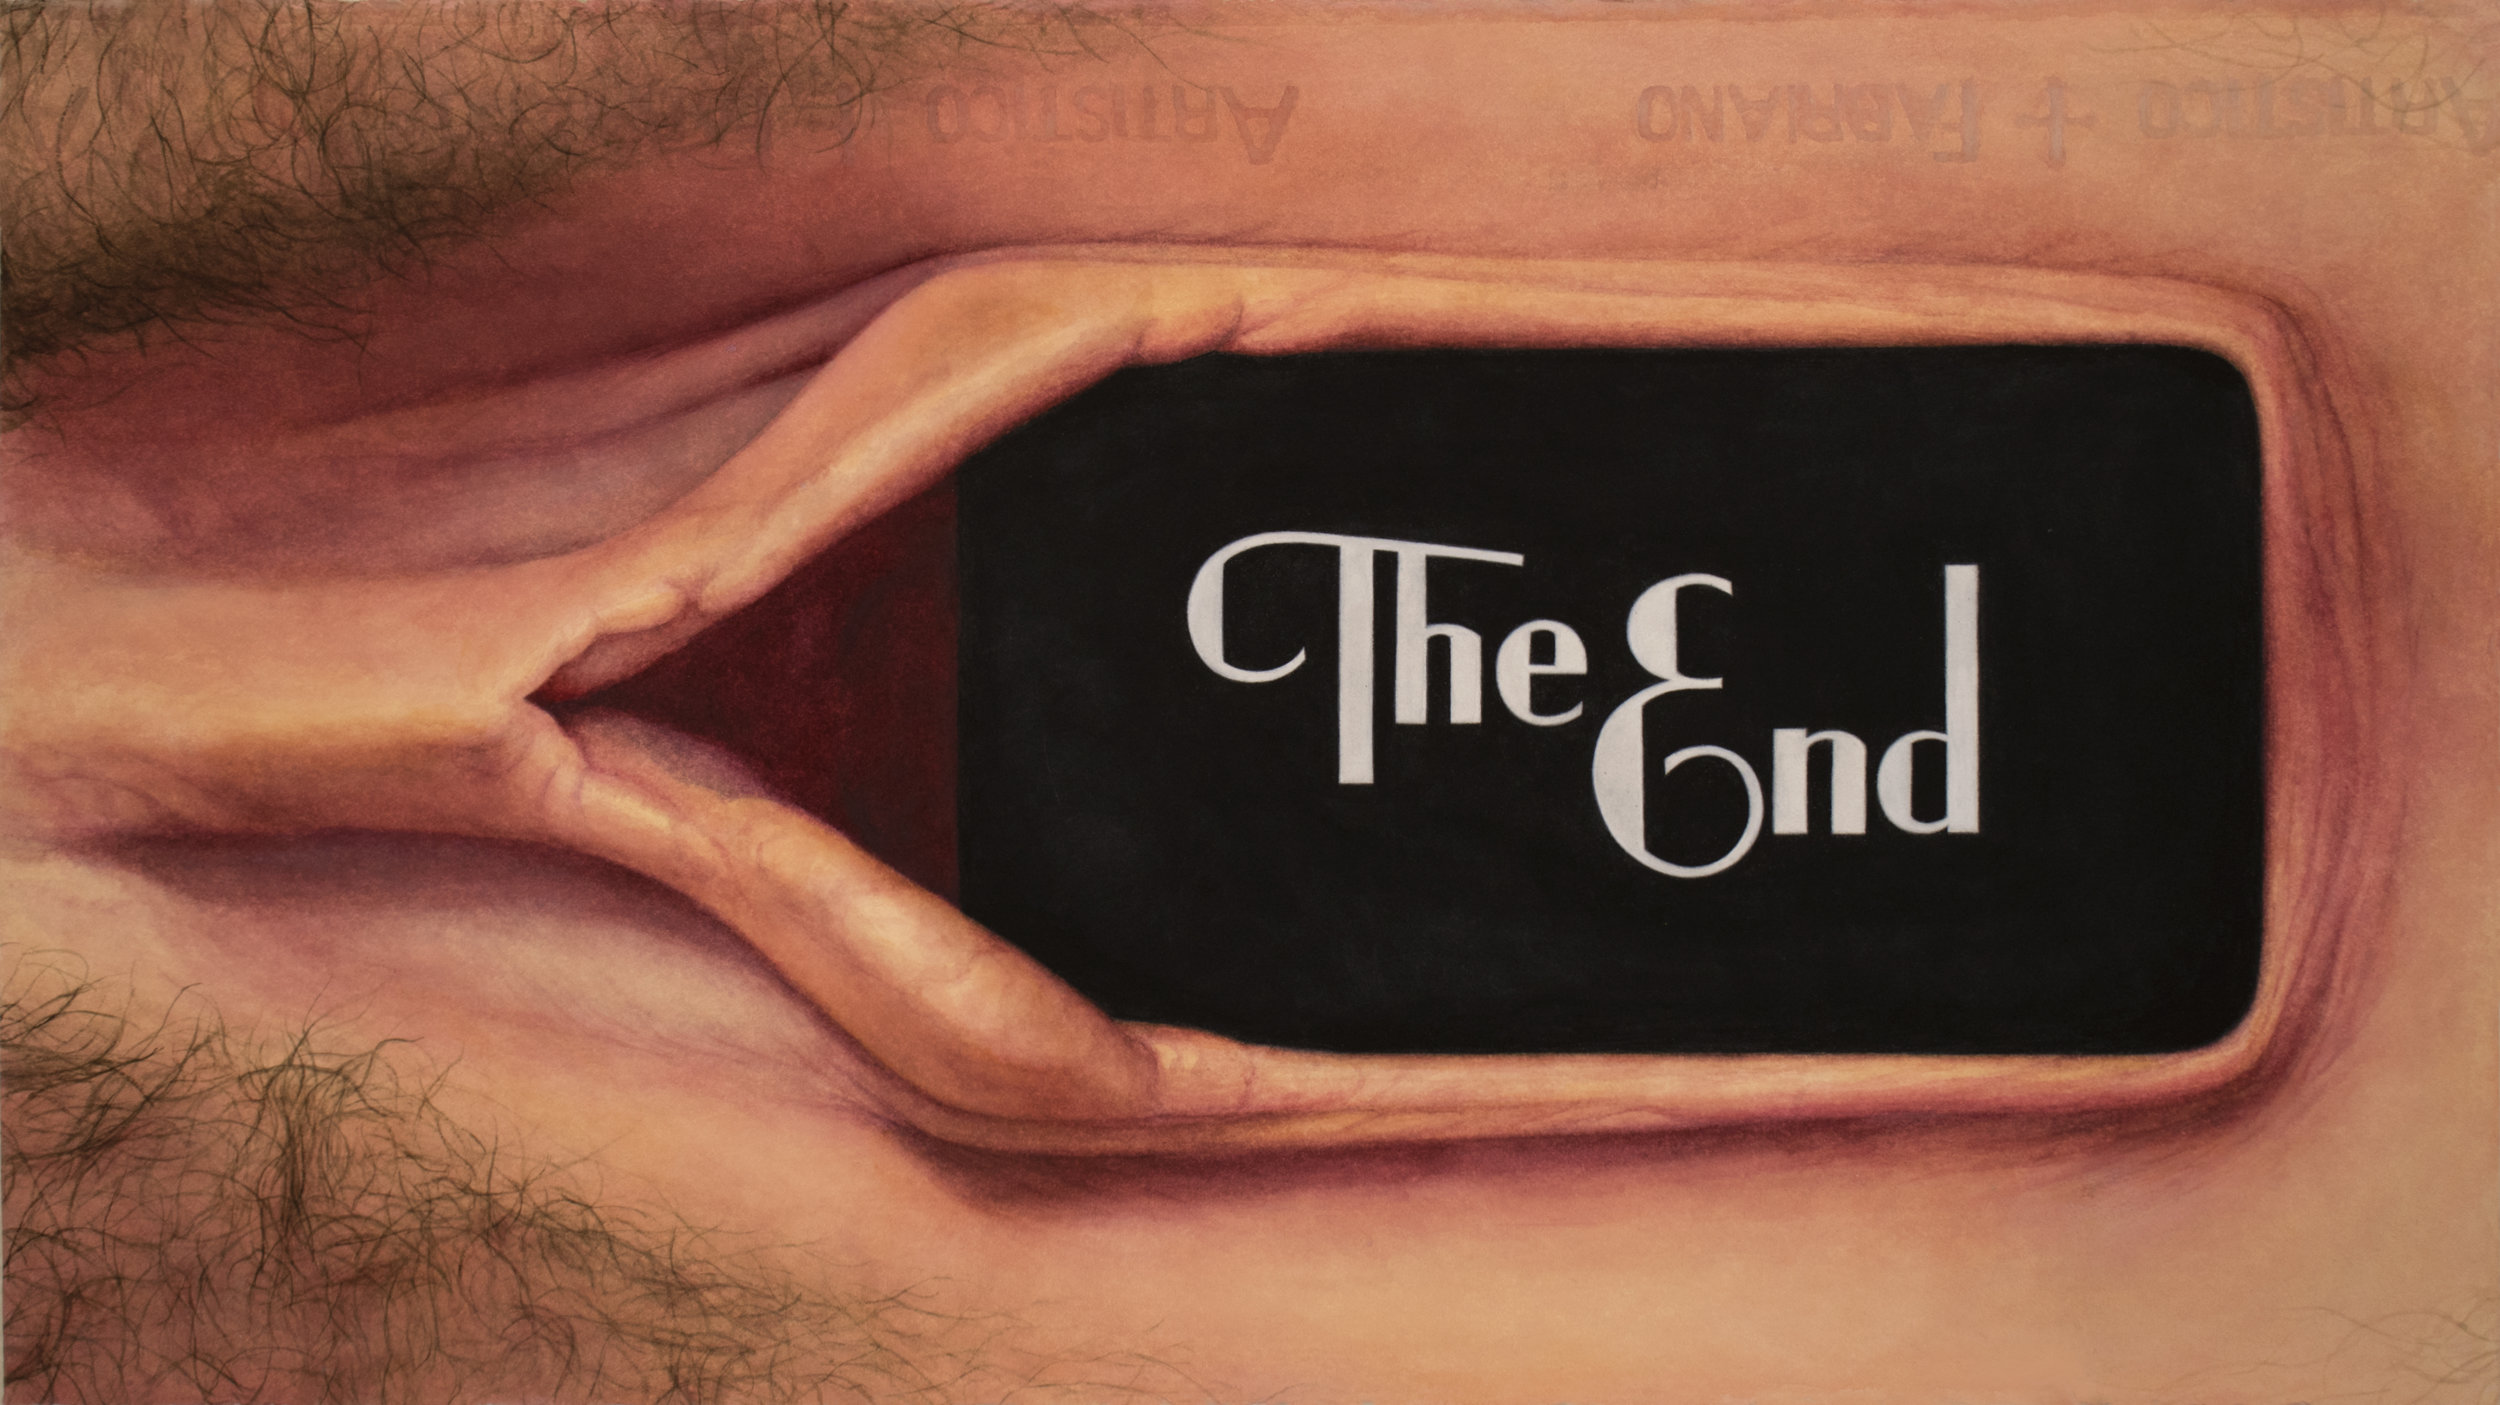 {The End, vagina}